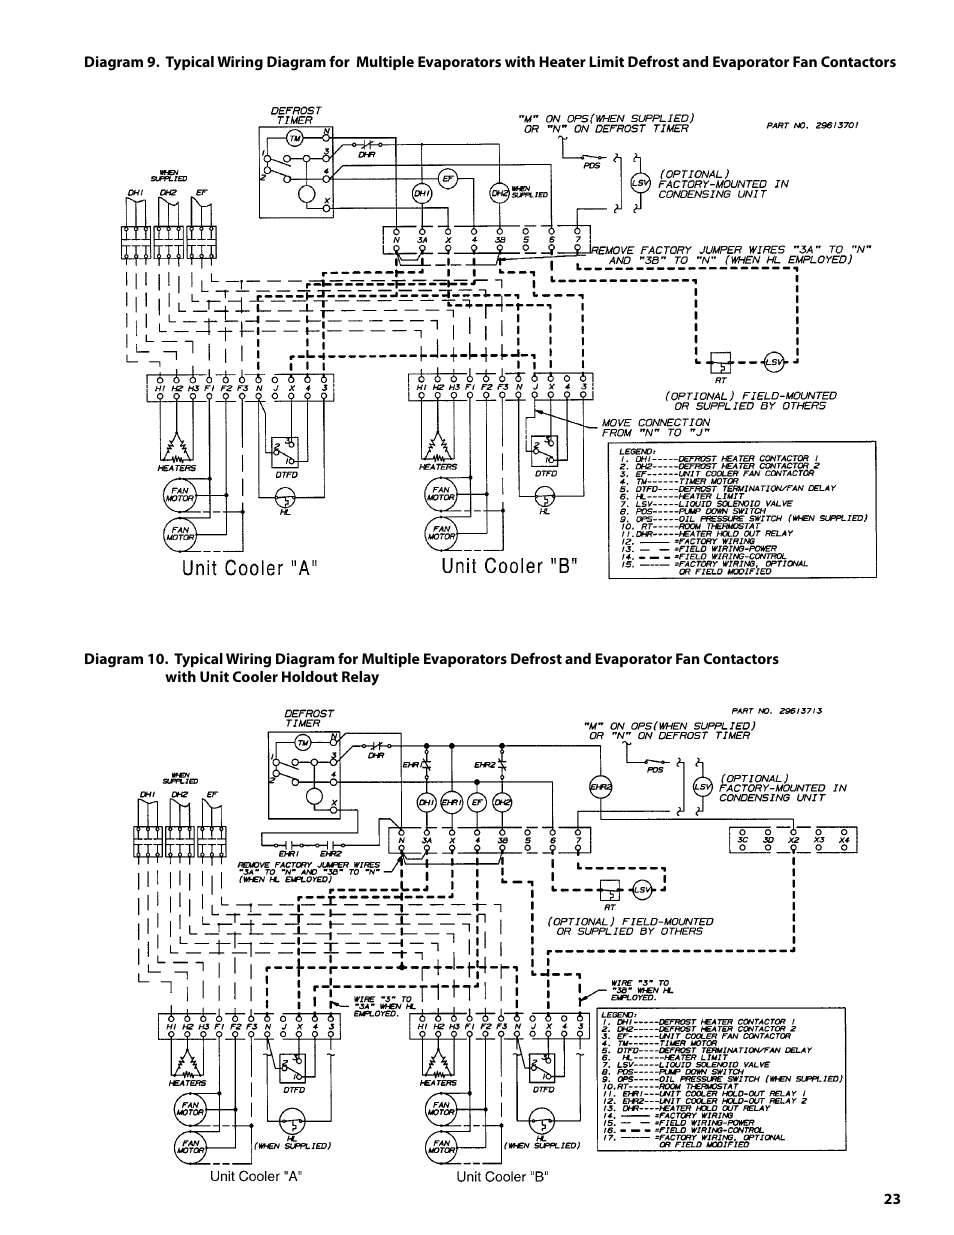 heatcraft refrigeration products condensing units h im cu page23 heatcraft refrigeration products condensing units h im cu user heatcraft wiring diagram at webbmarketing.co